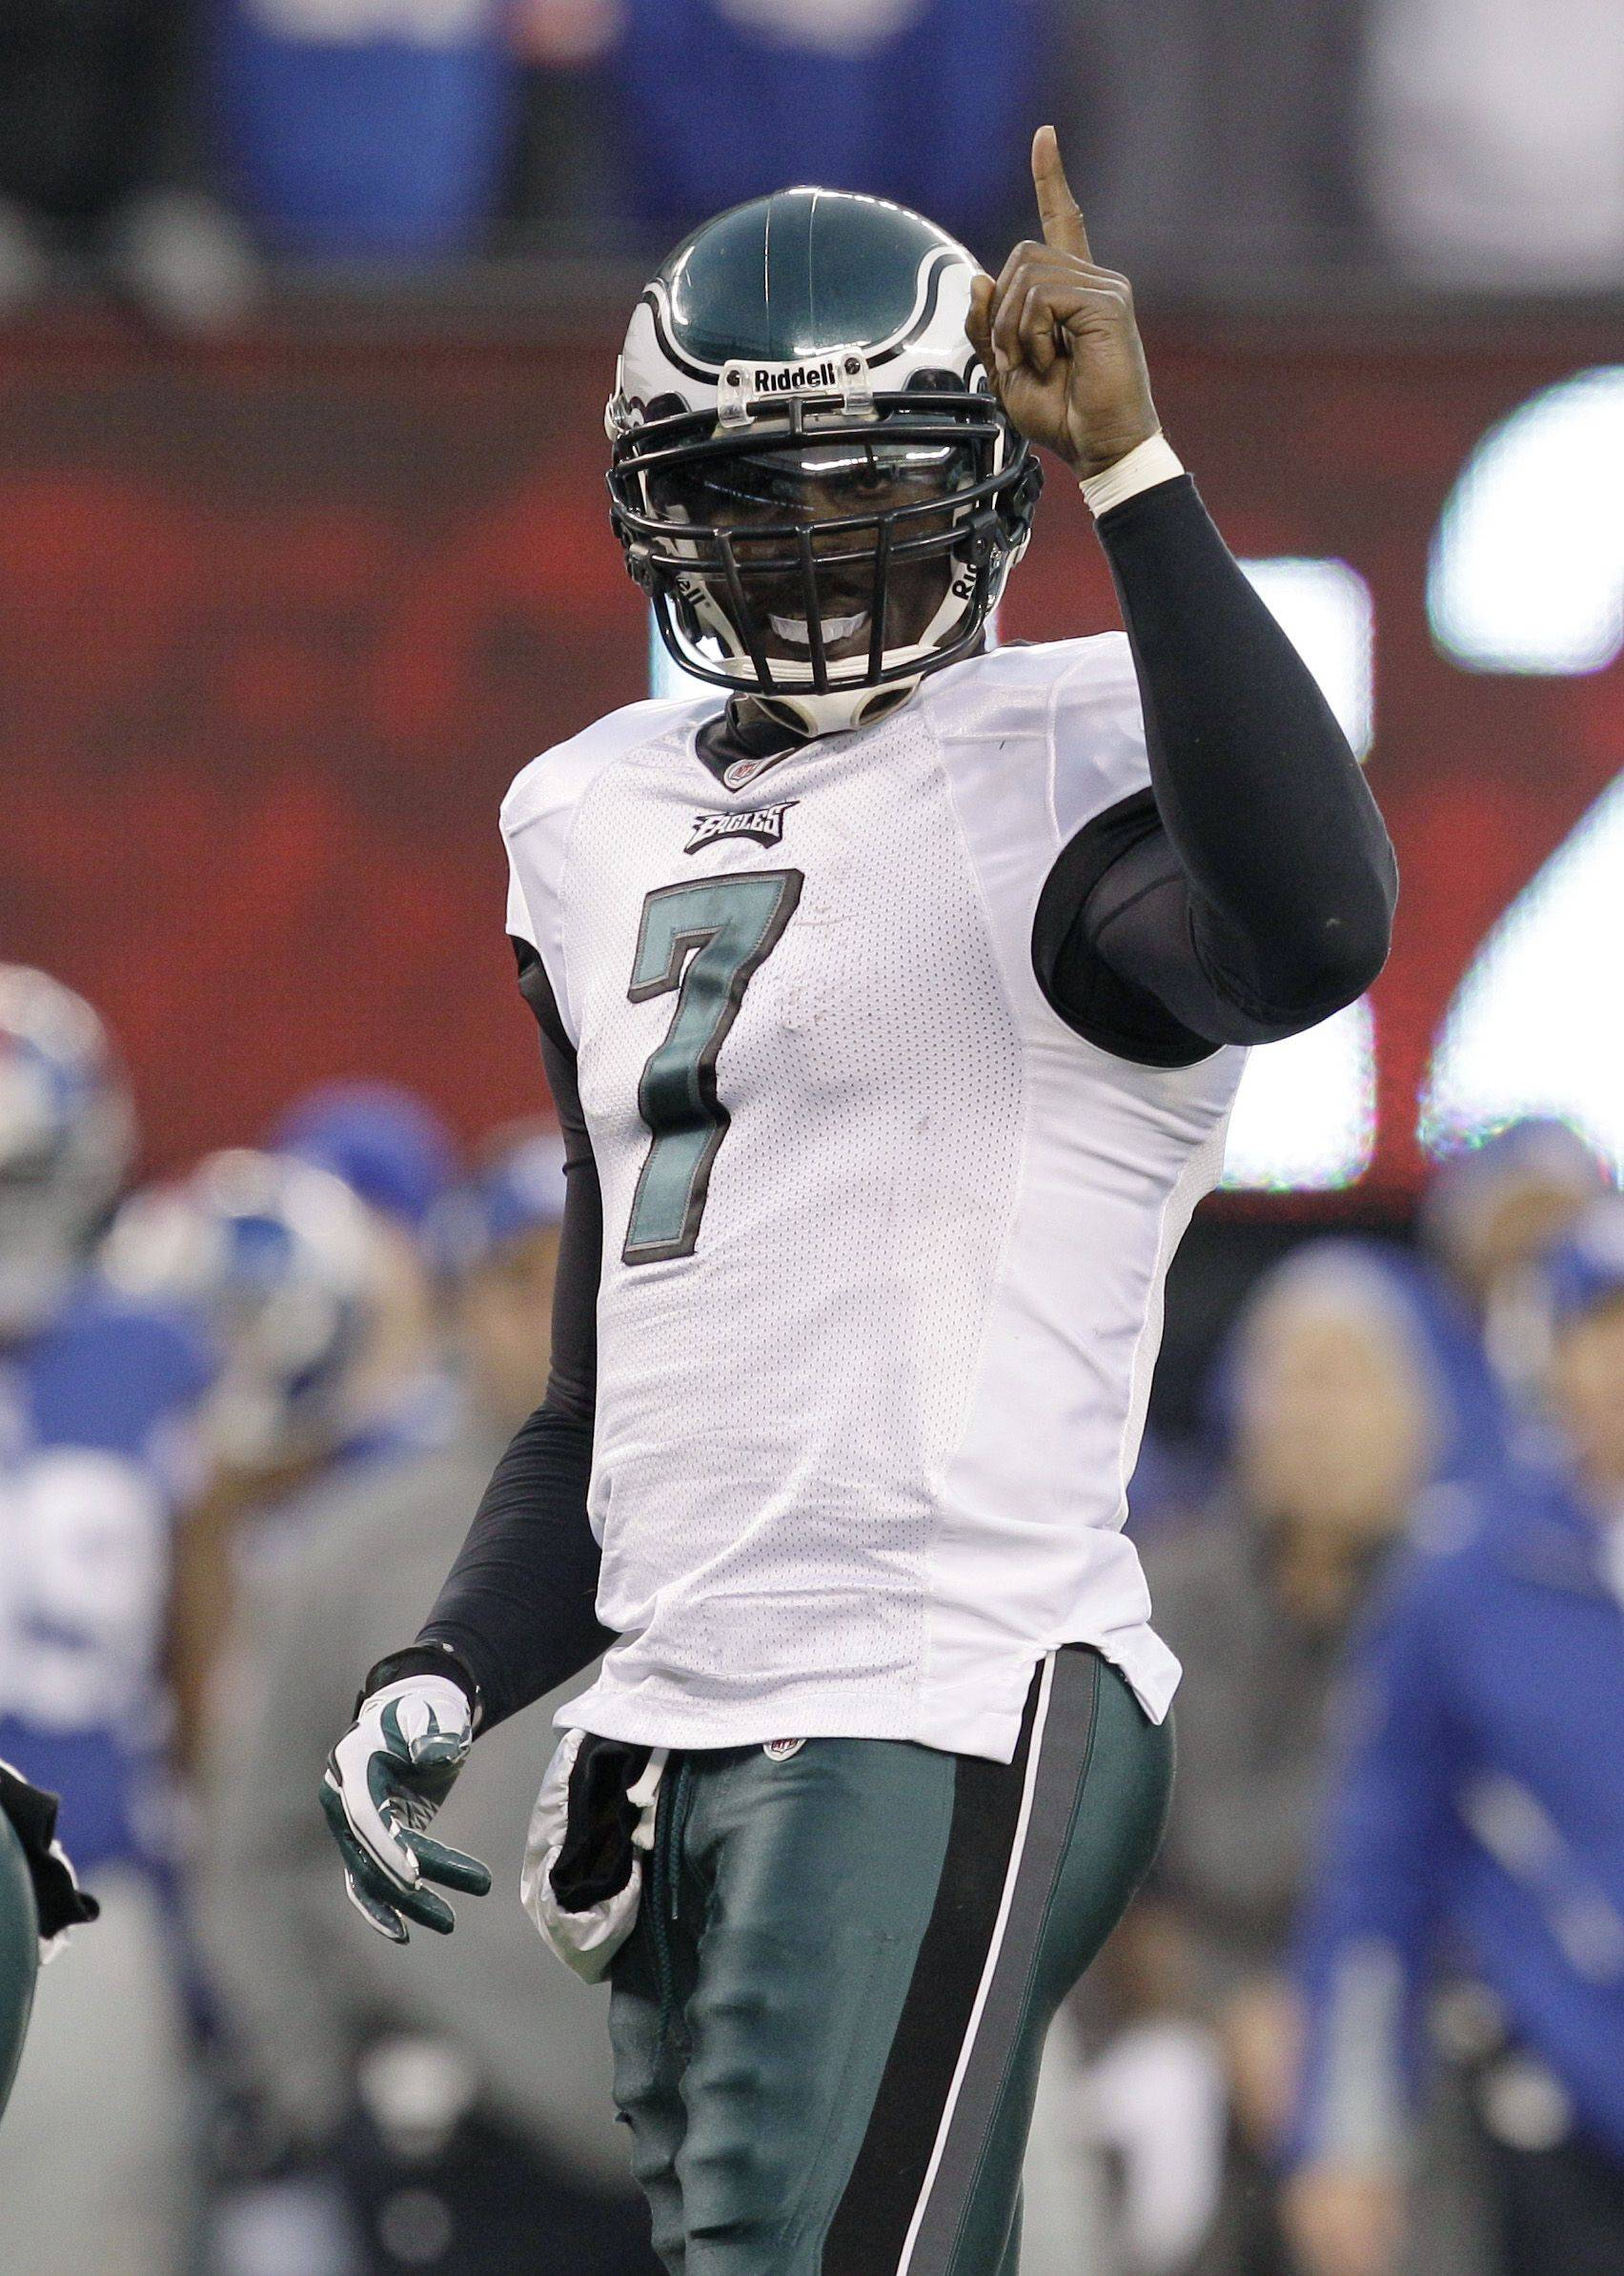 Philadelphia Eagles quarterback Michael Vick likely will be a first-round pick in many fantasy football drafts next season. He leads the NFL in fantasy scoring this year.